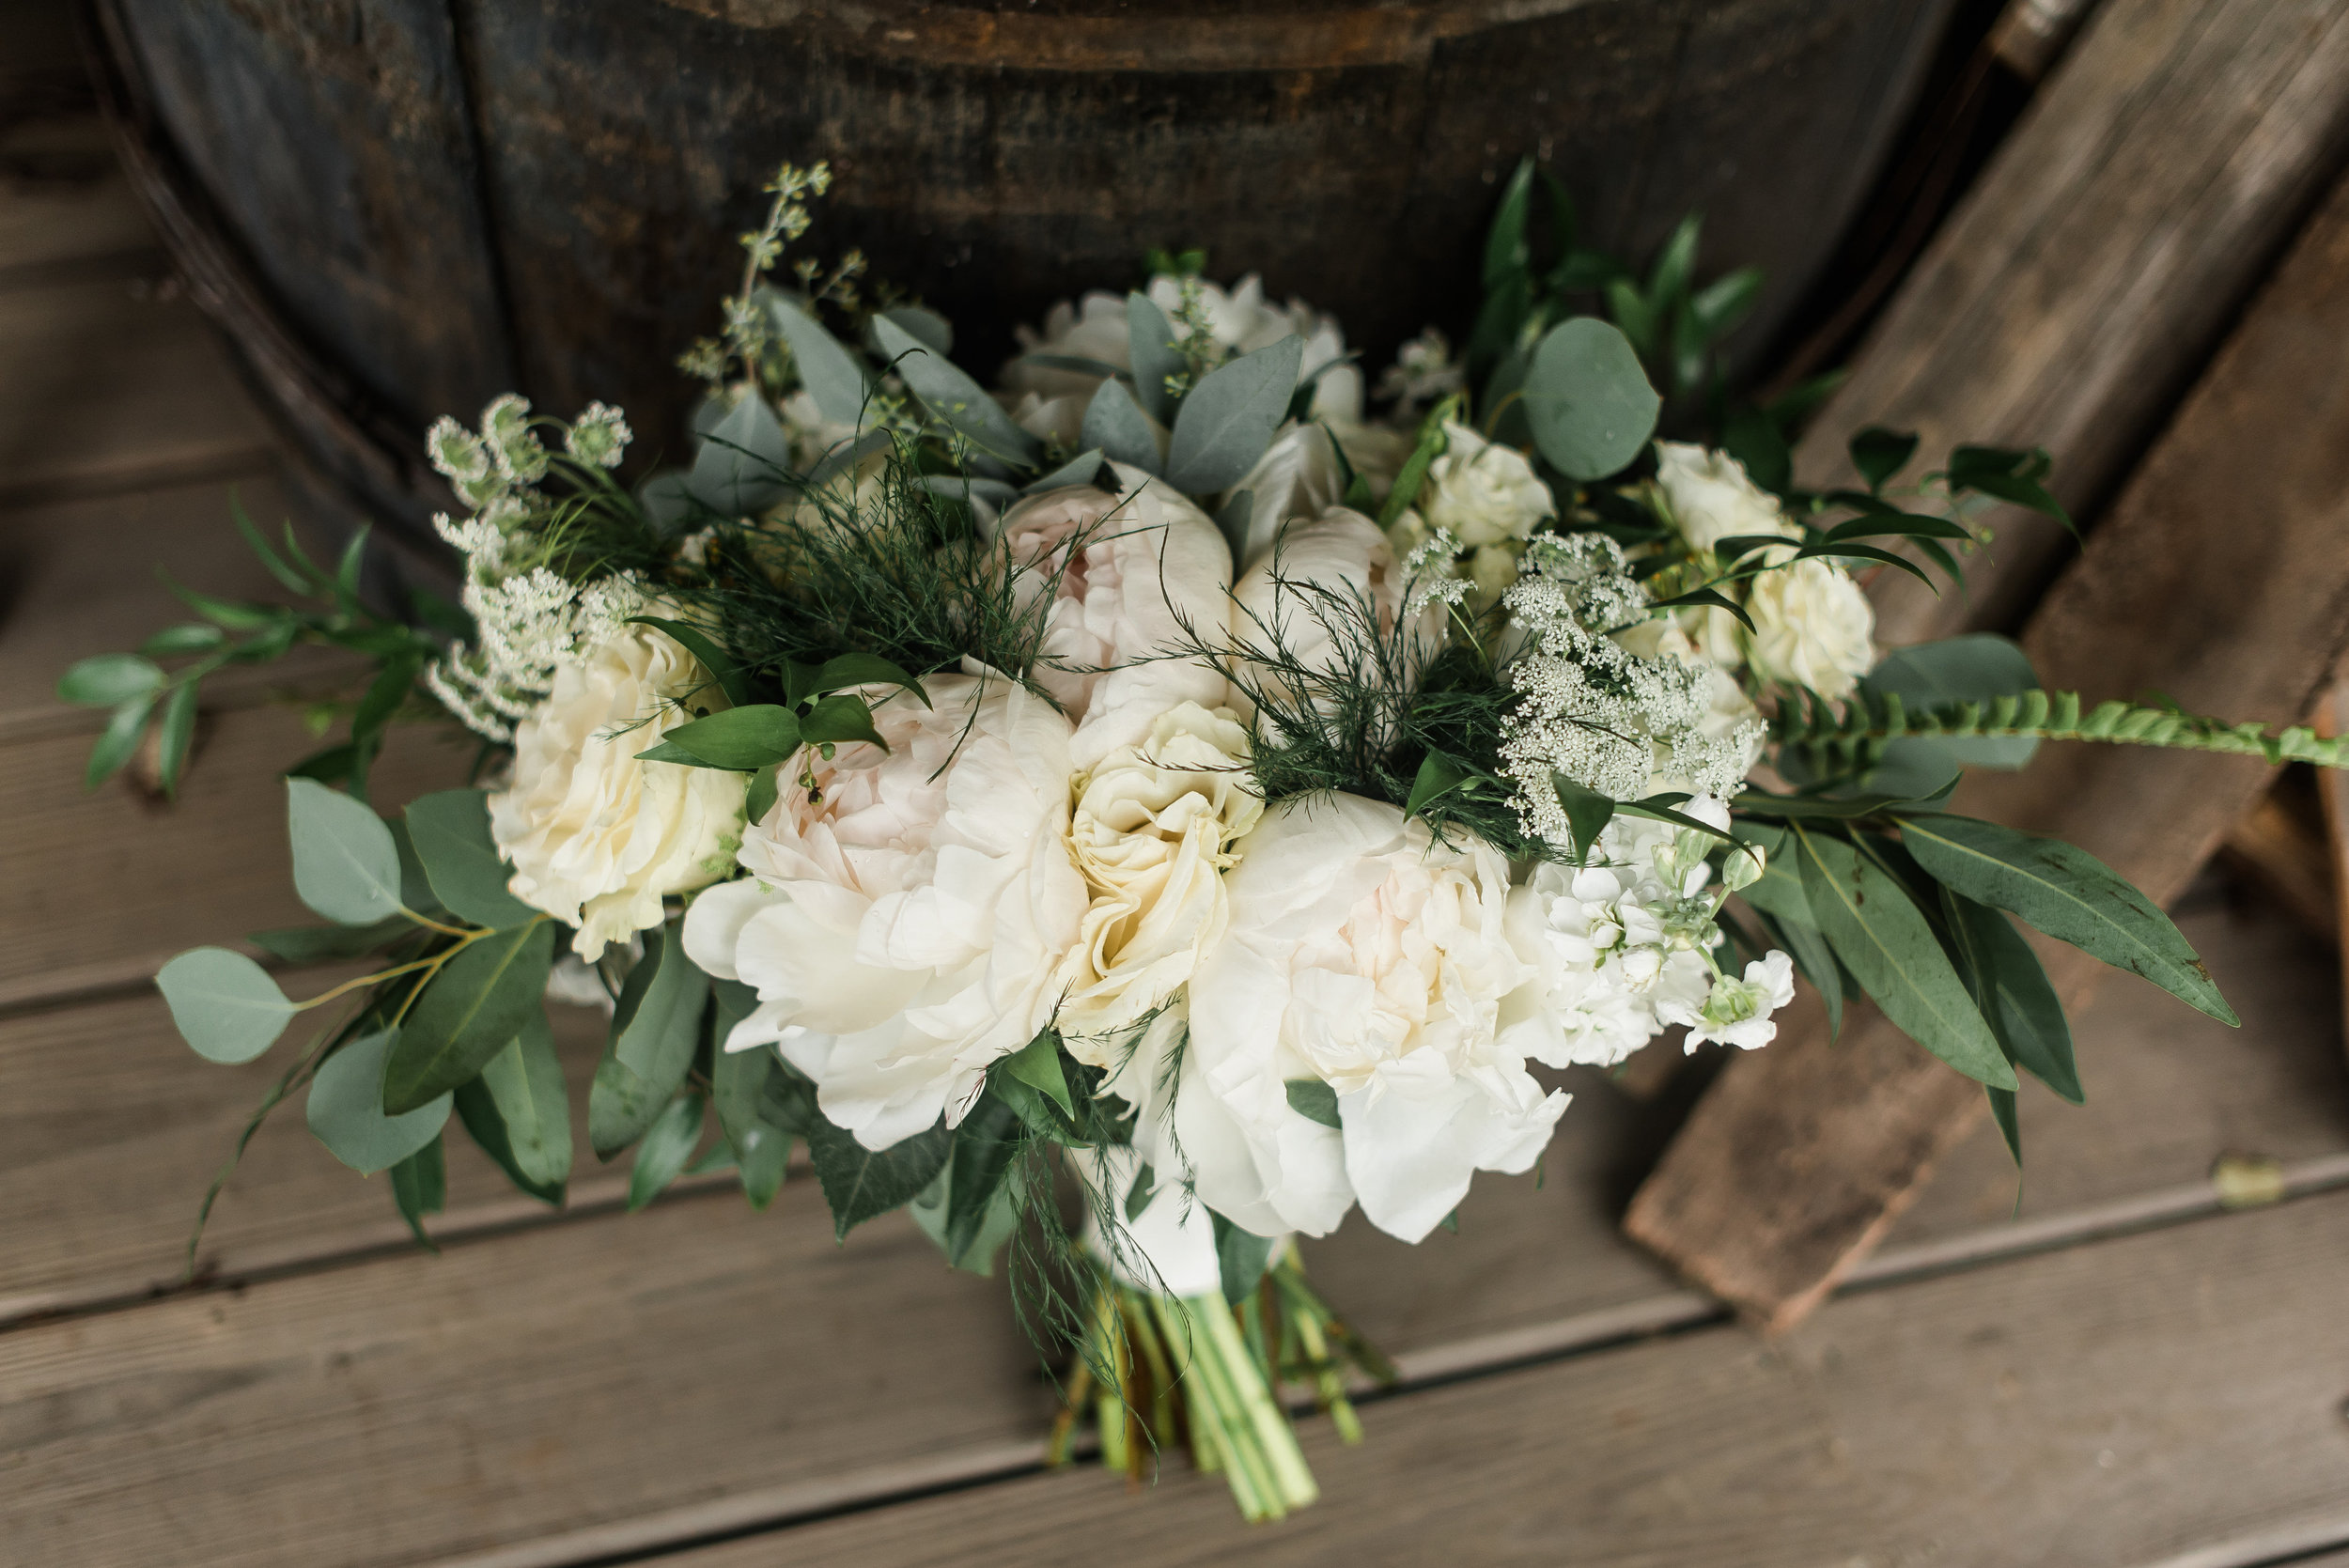 pittsburgh-wedding-photographer-greenery-summer-classic-traditional-rusticacresfarm0078.jpg